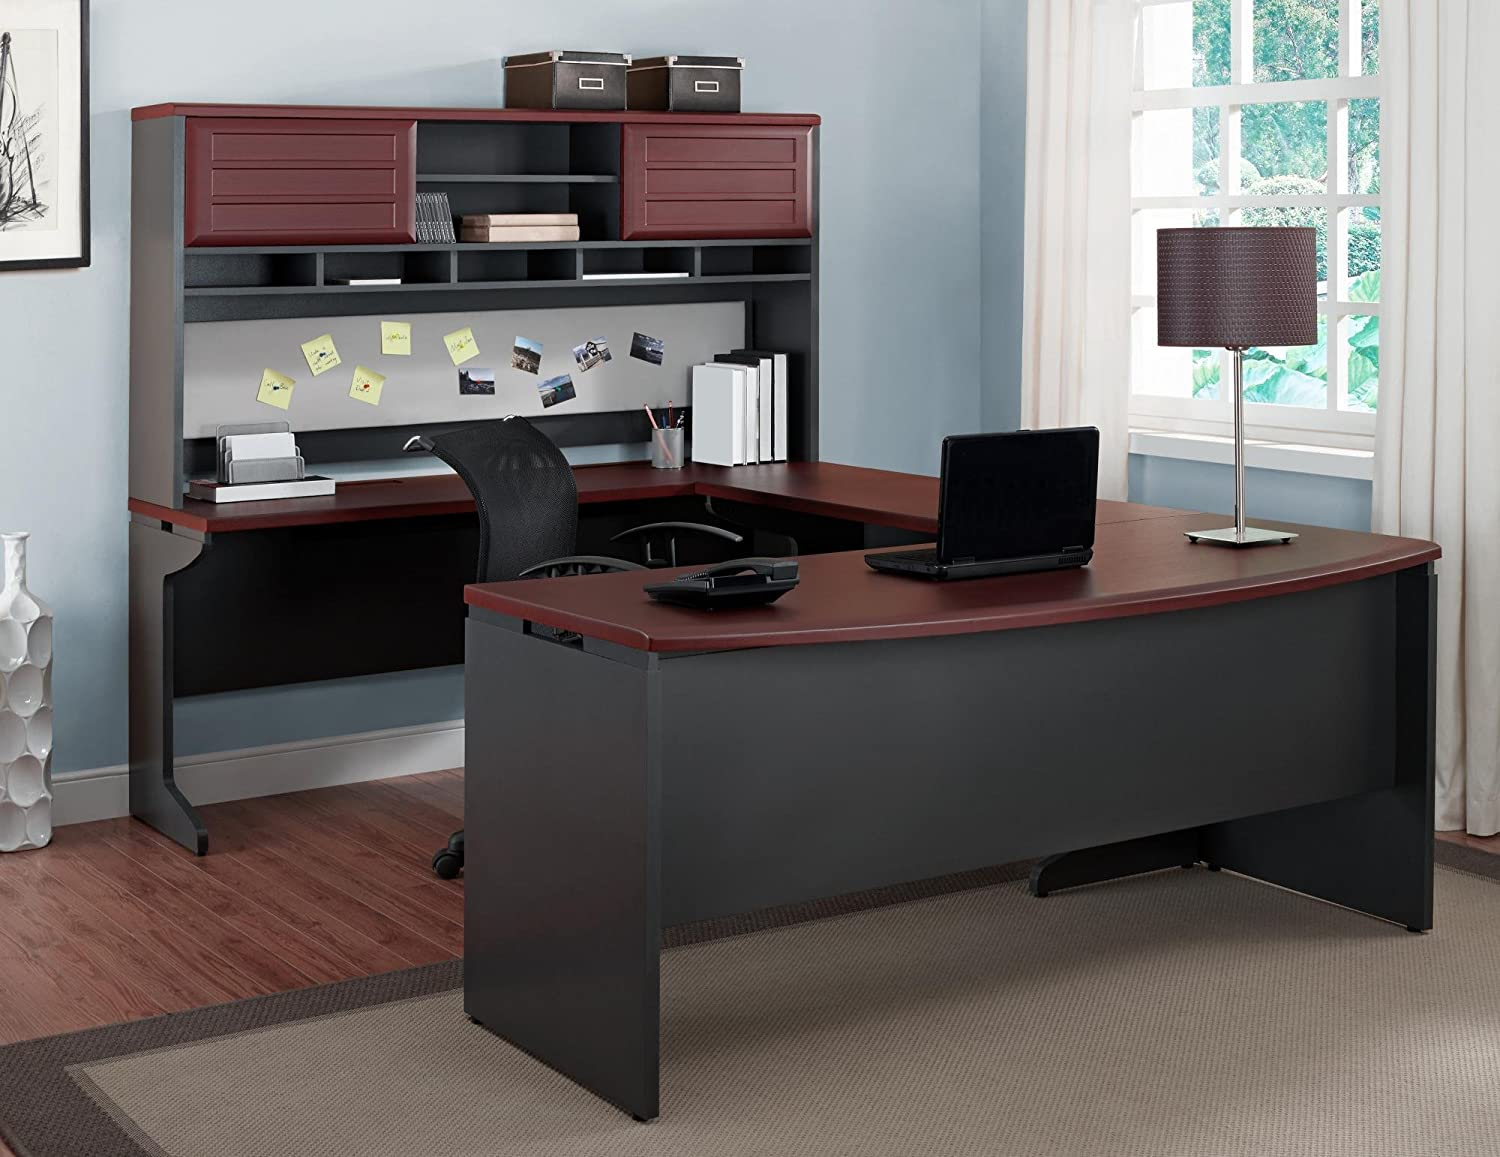 Amazon com ameriwood home pursuit u shaped desk with hutch bundle cherry kitchen dining